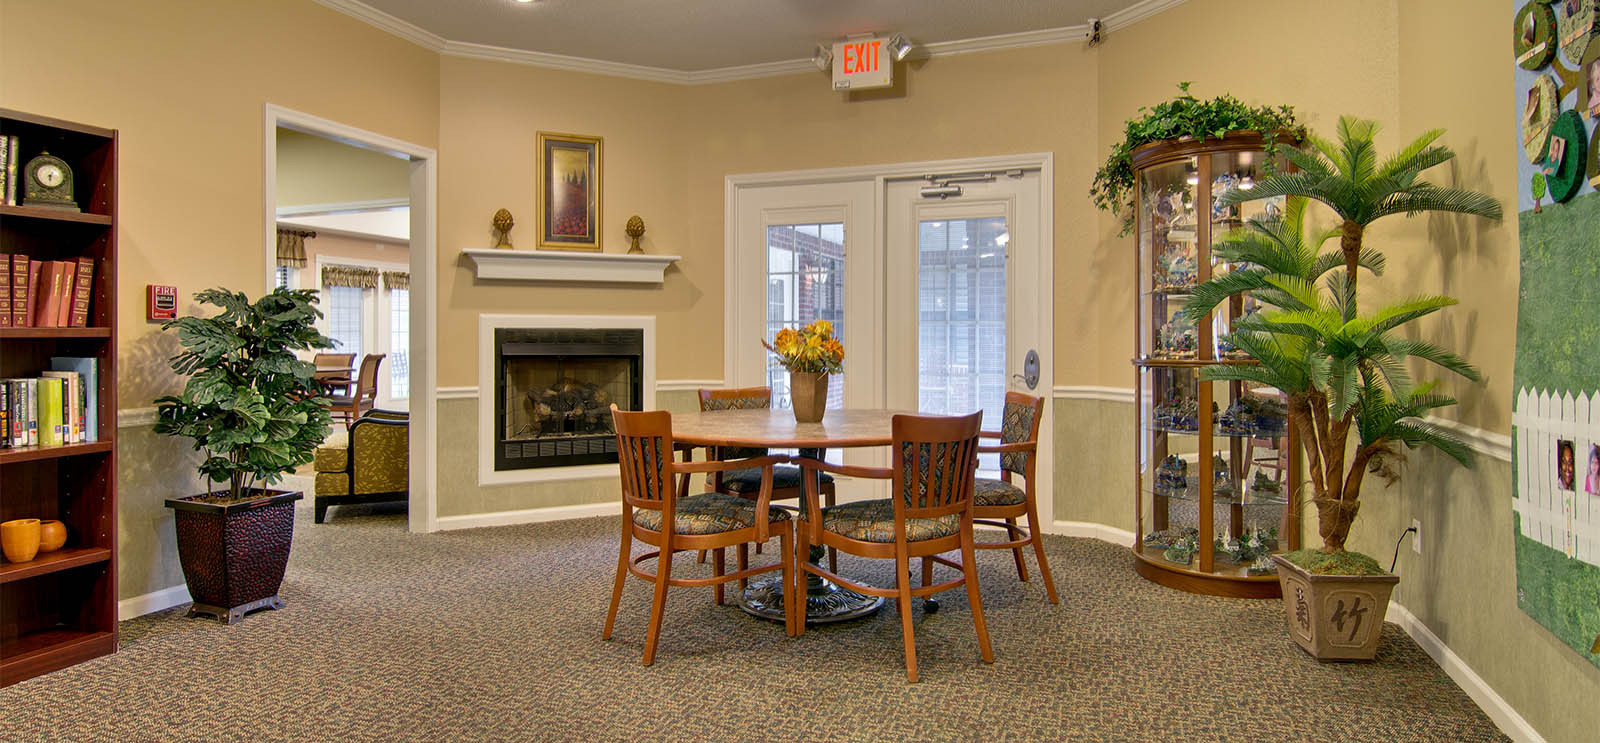 Respite Care & Assisted Living in Olive Branch, MS | Olive Grove Terrace